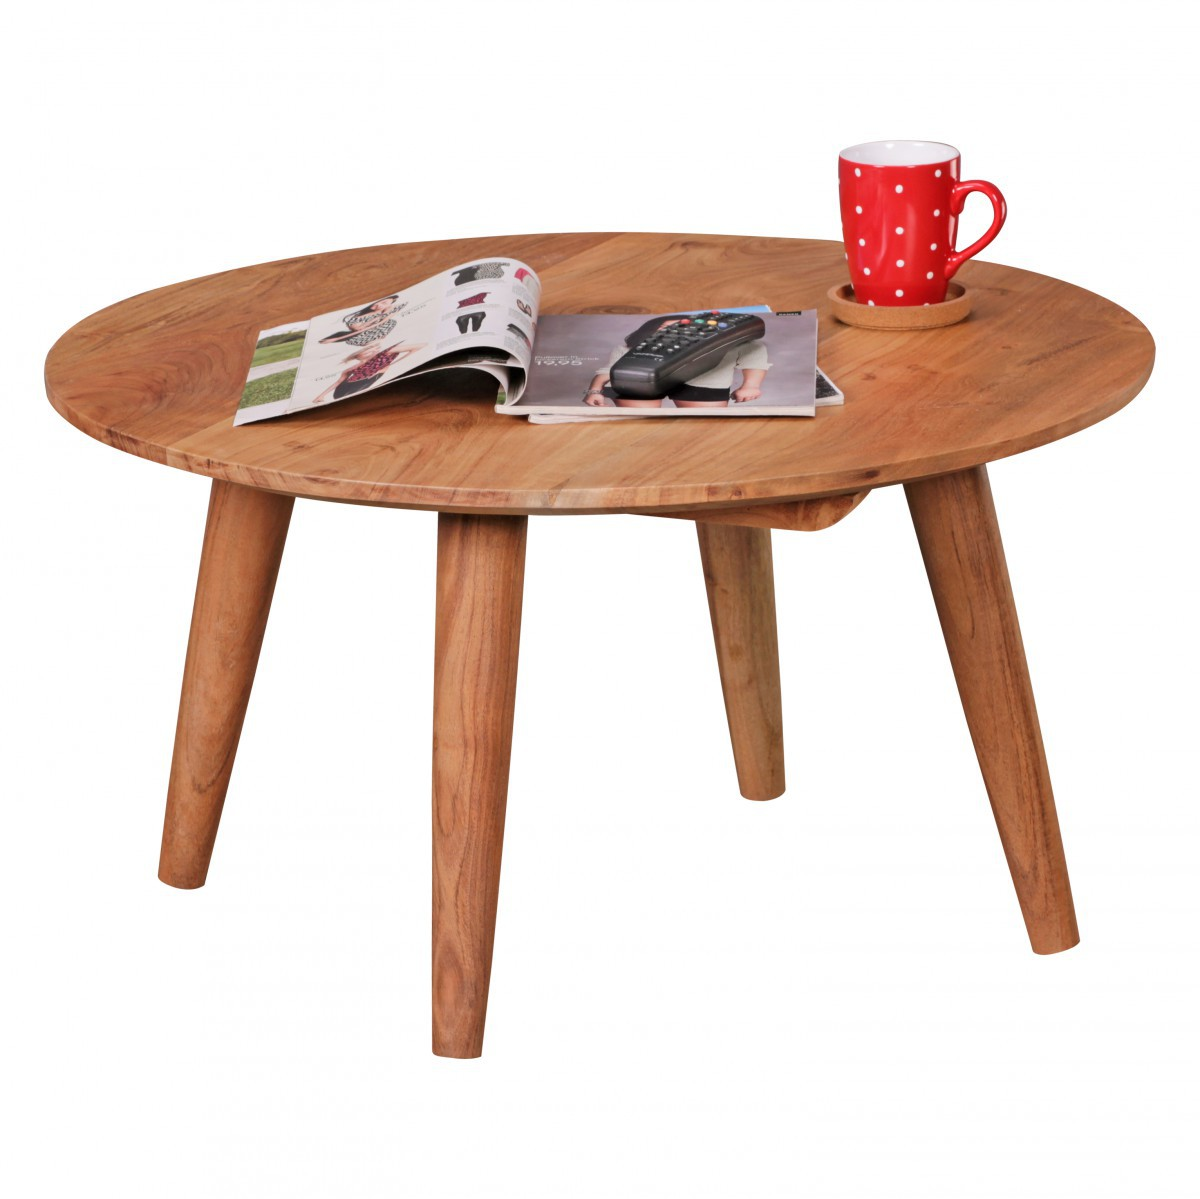 Finebuy table basse en bois massif acacia table basse - Table ronde 80 cm ...